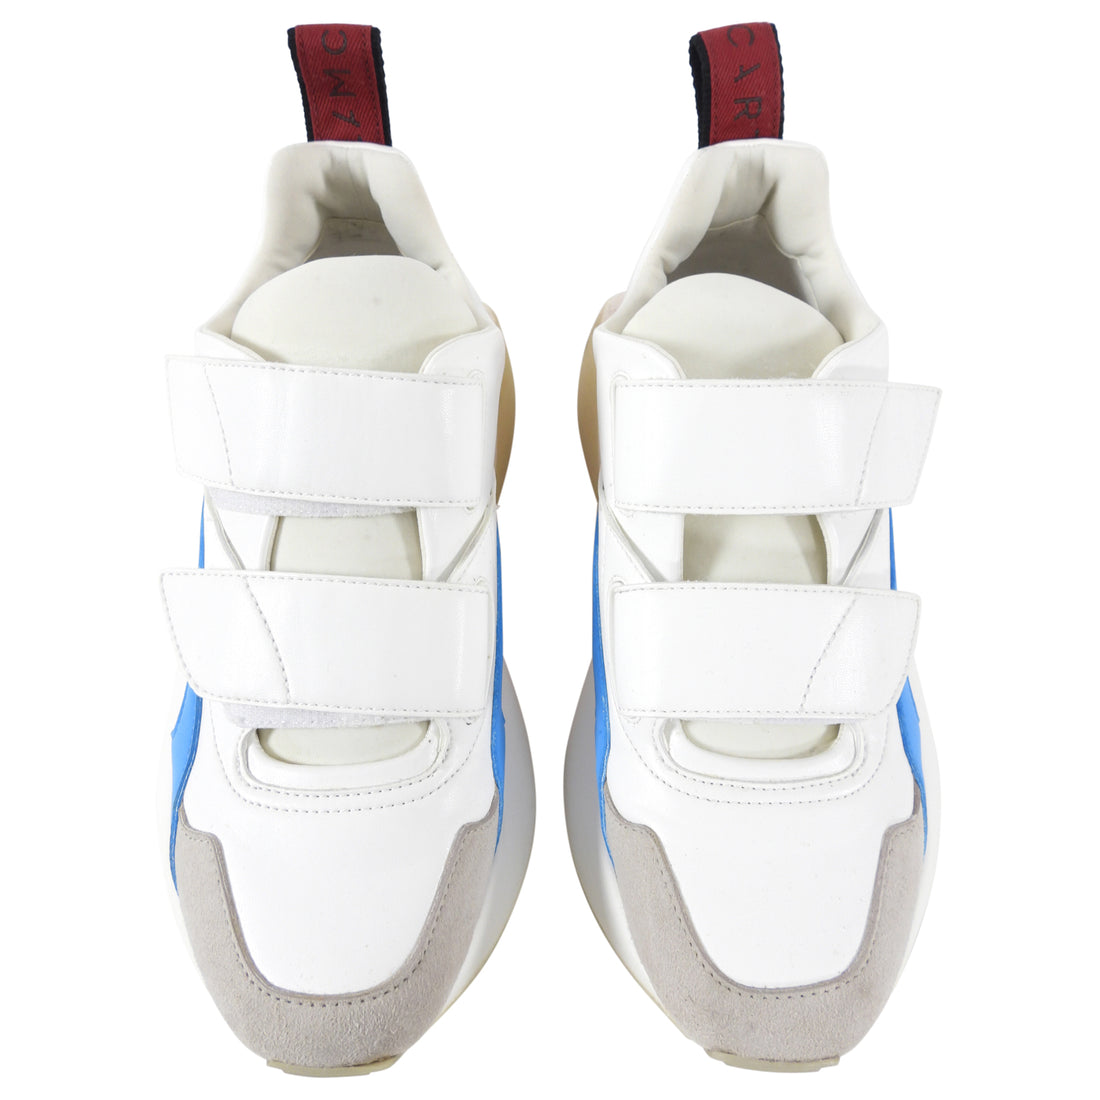 Stella McCartney White, Red, Blue Chunky Sneakers - USA 6.5